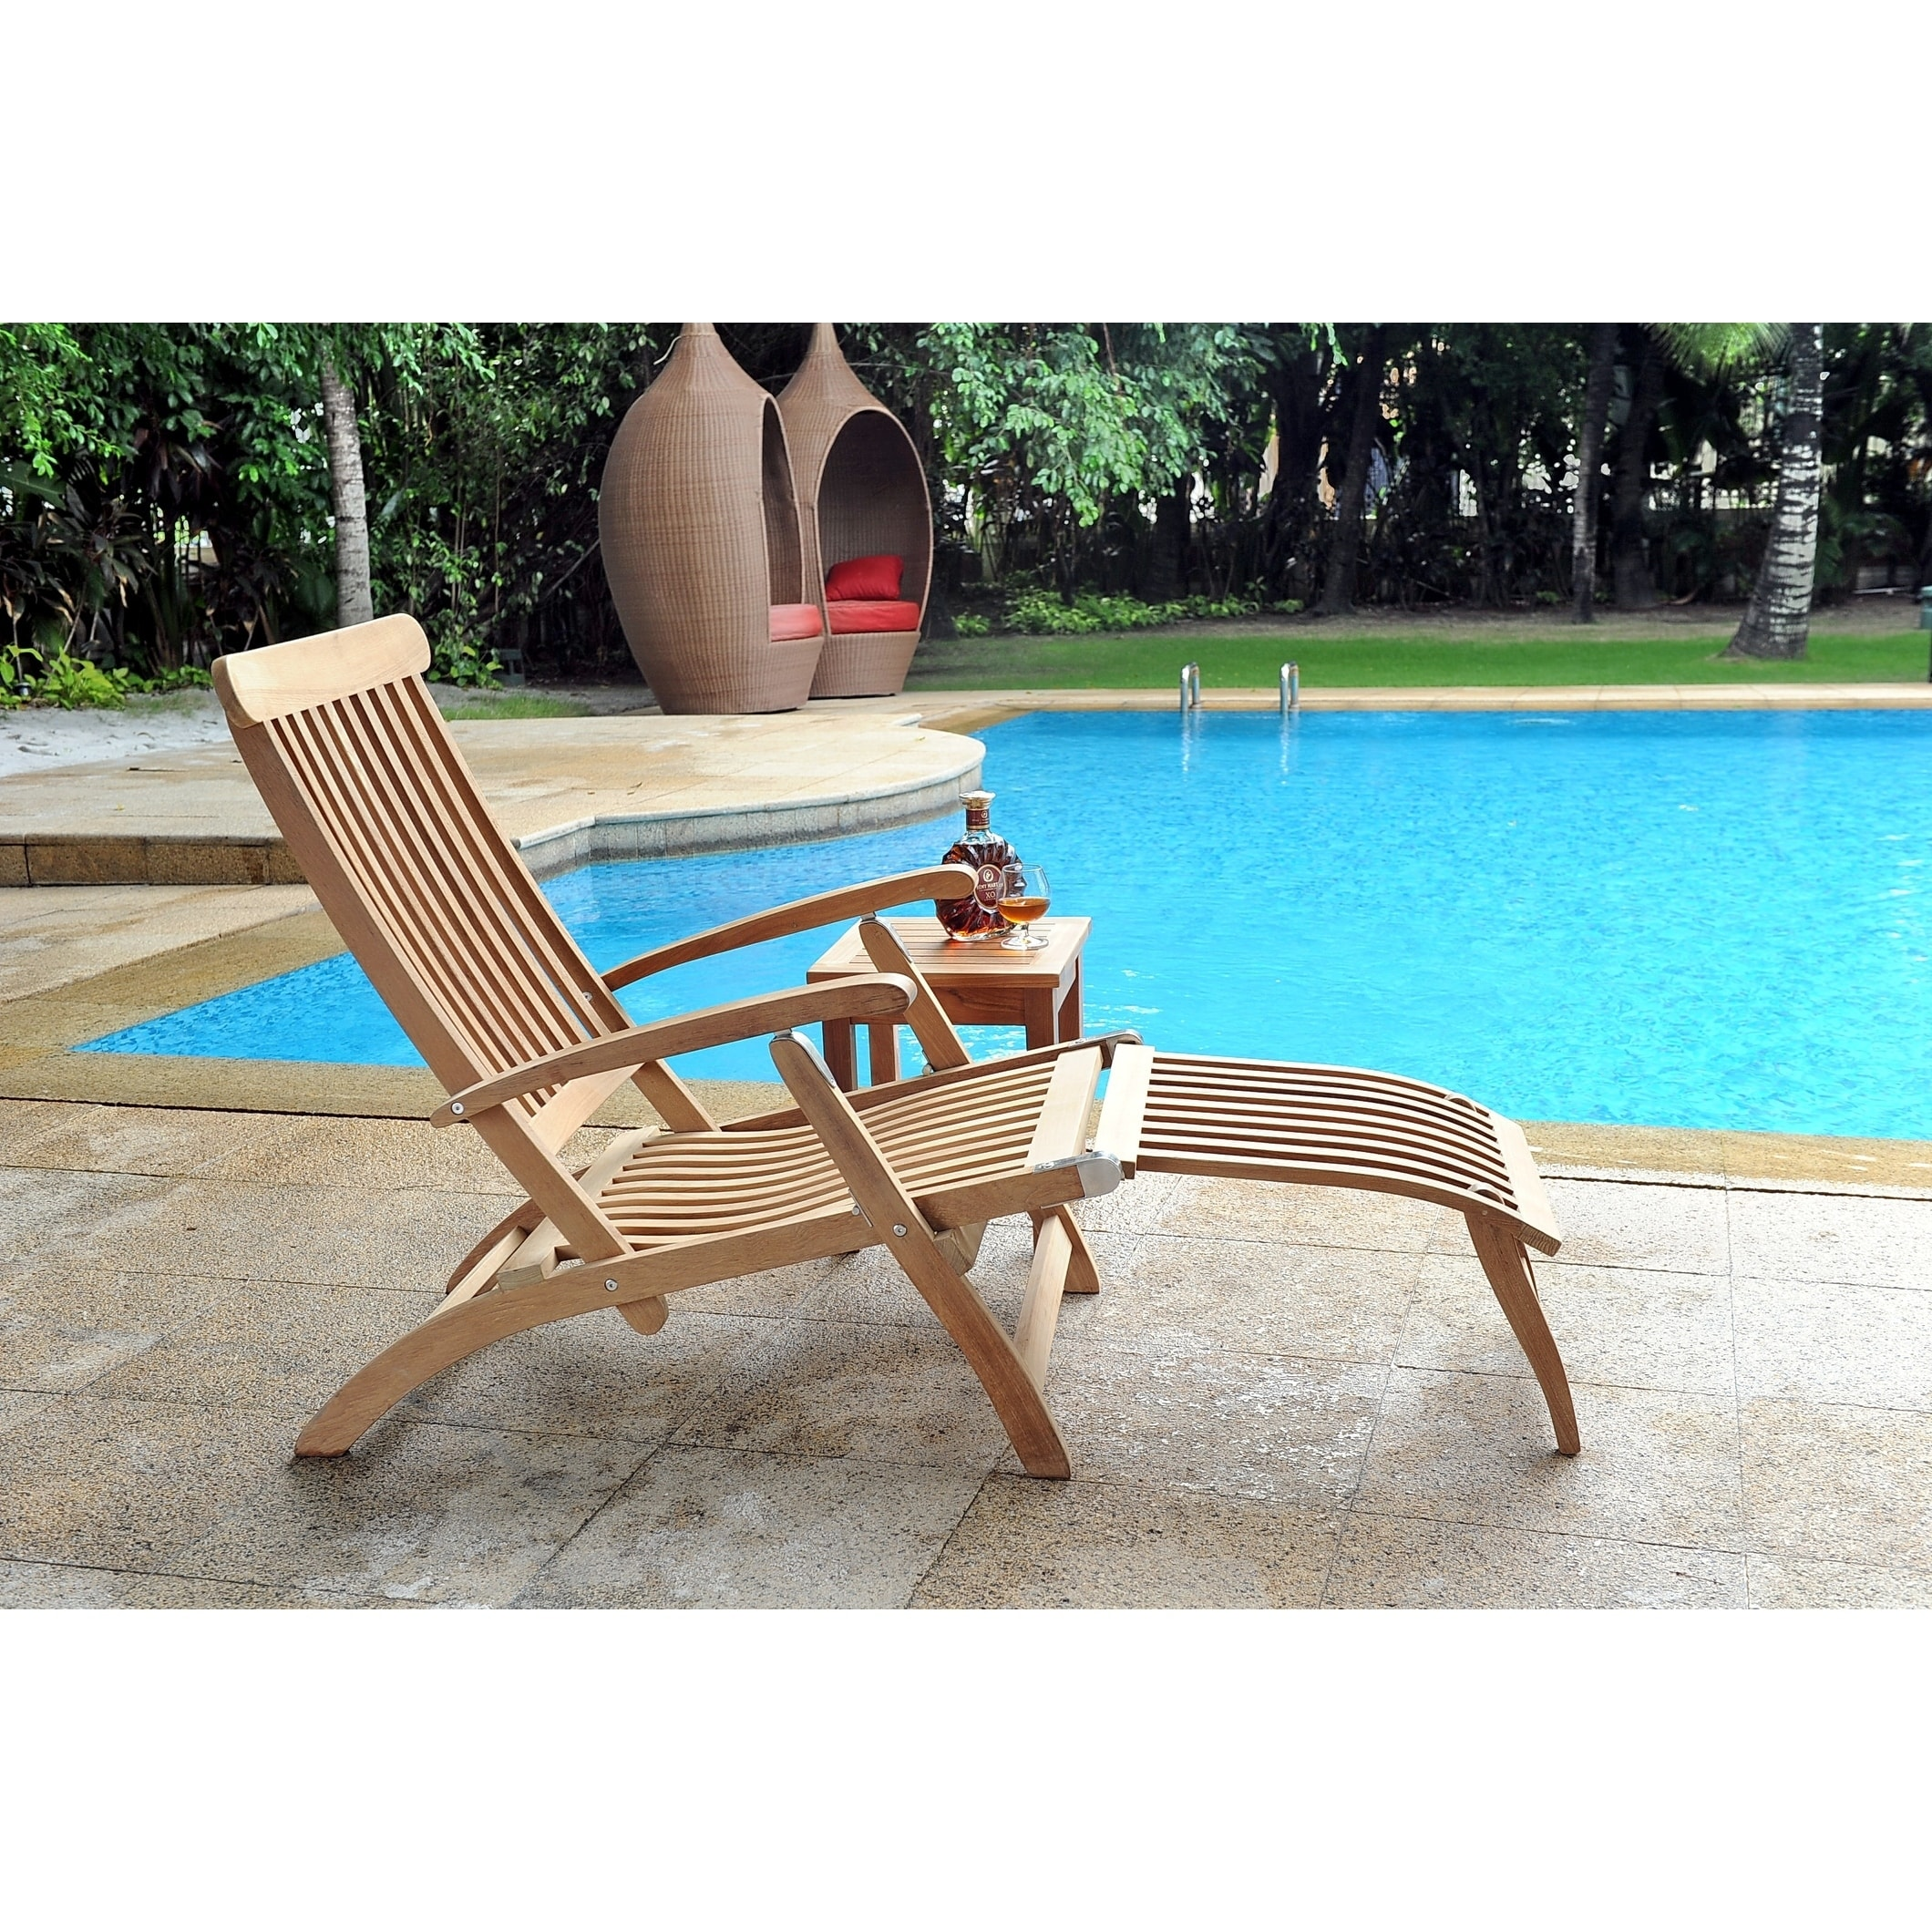 HiTeak Steamer Outdoor Folding Teak Chaise Lounge Chair